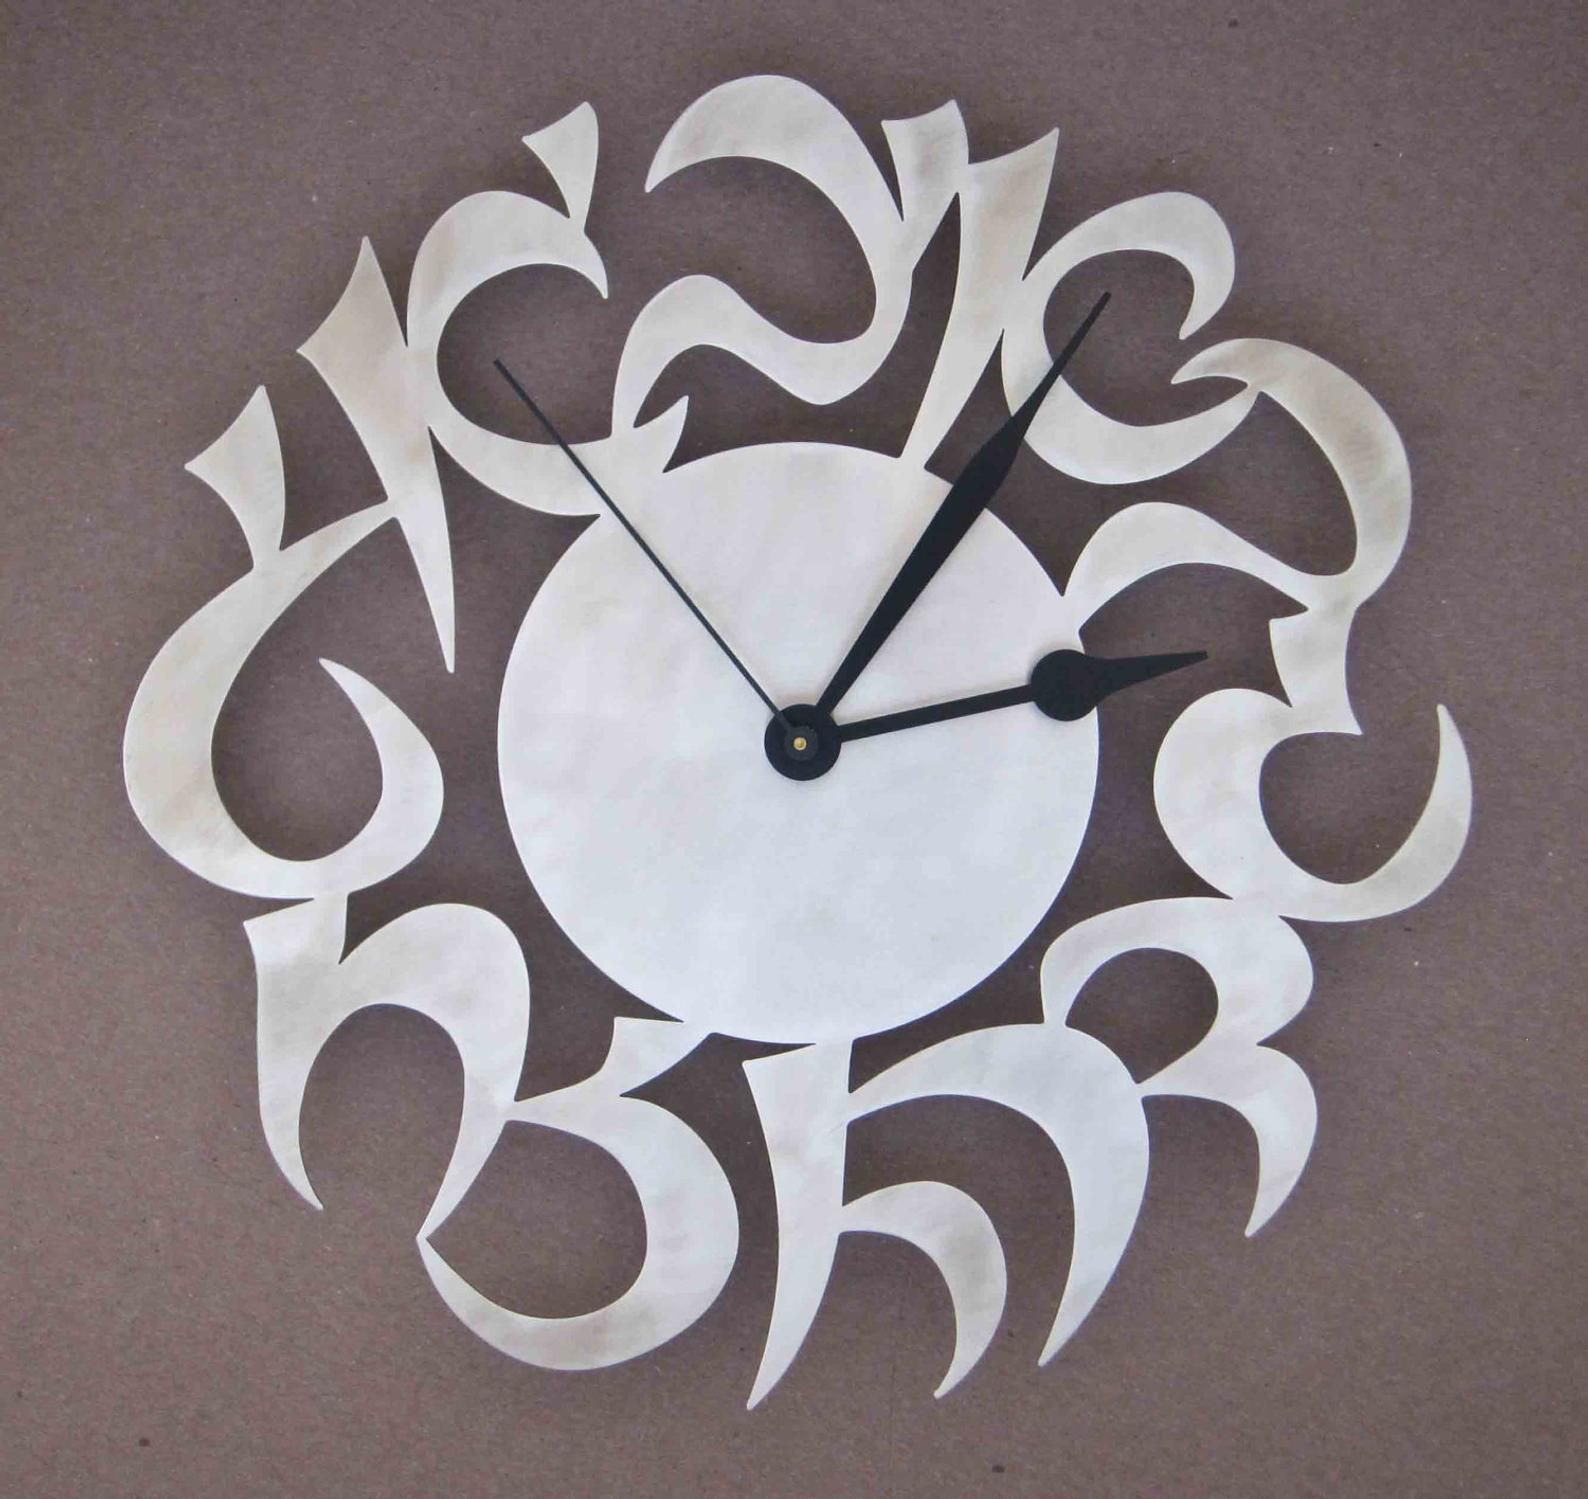 Yoyomin Wall Clock Novel Stainless Steel Clock With Knife Fork Spoon Analog Home Decoration Sil Modern Kitchen Clocks Kitchen Clocks Modern Kitchen Wall Clocks